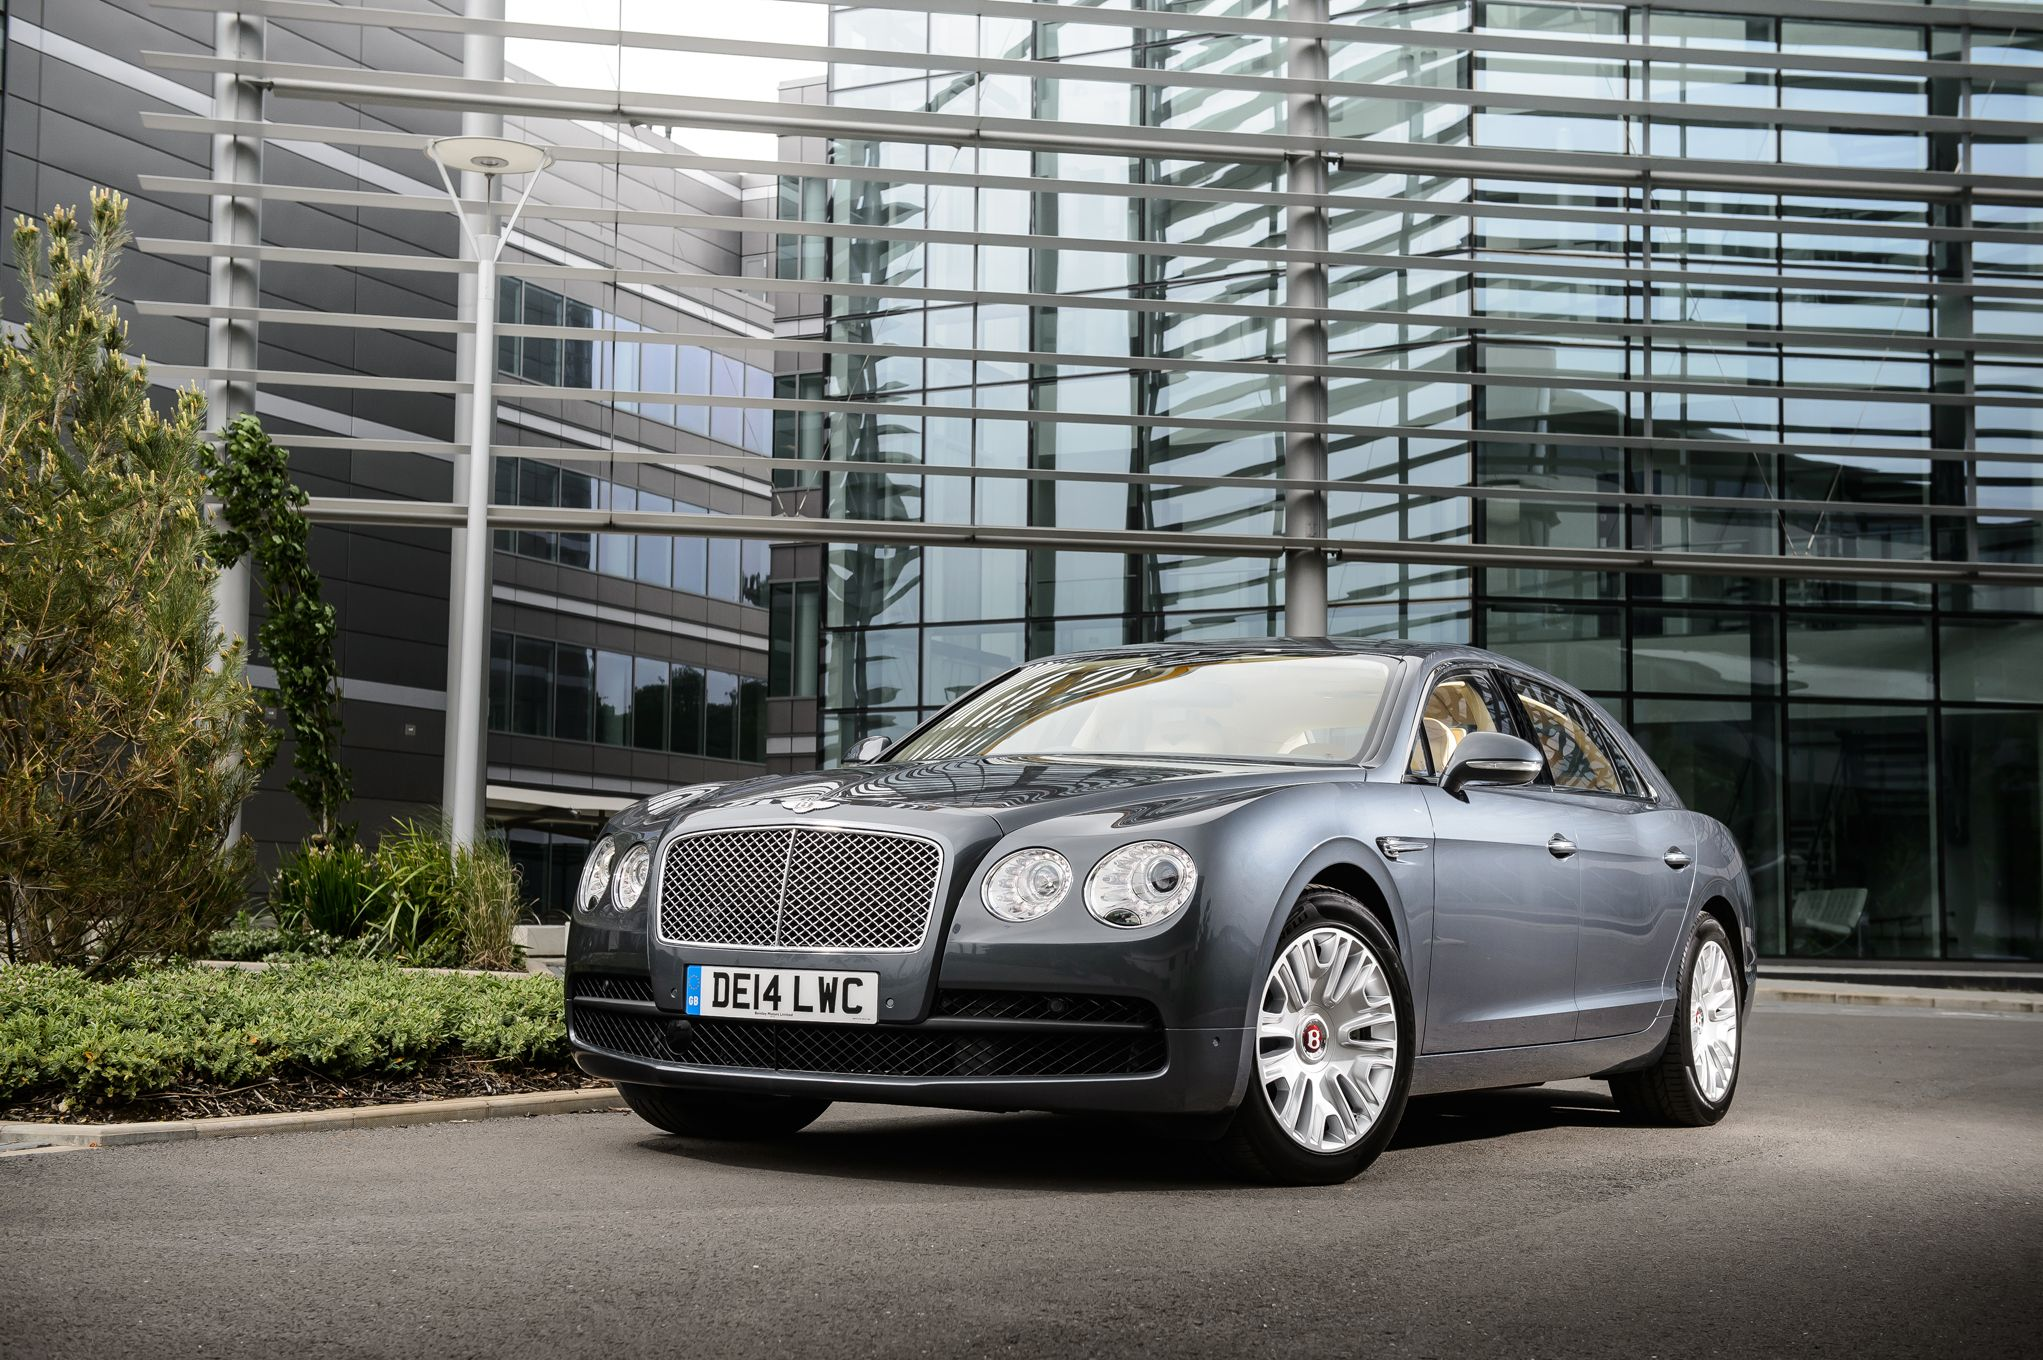 2019 Bentley Mulsanne photo - 2